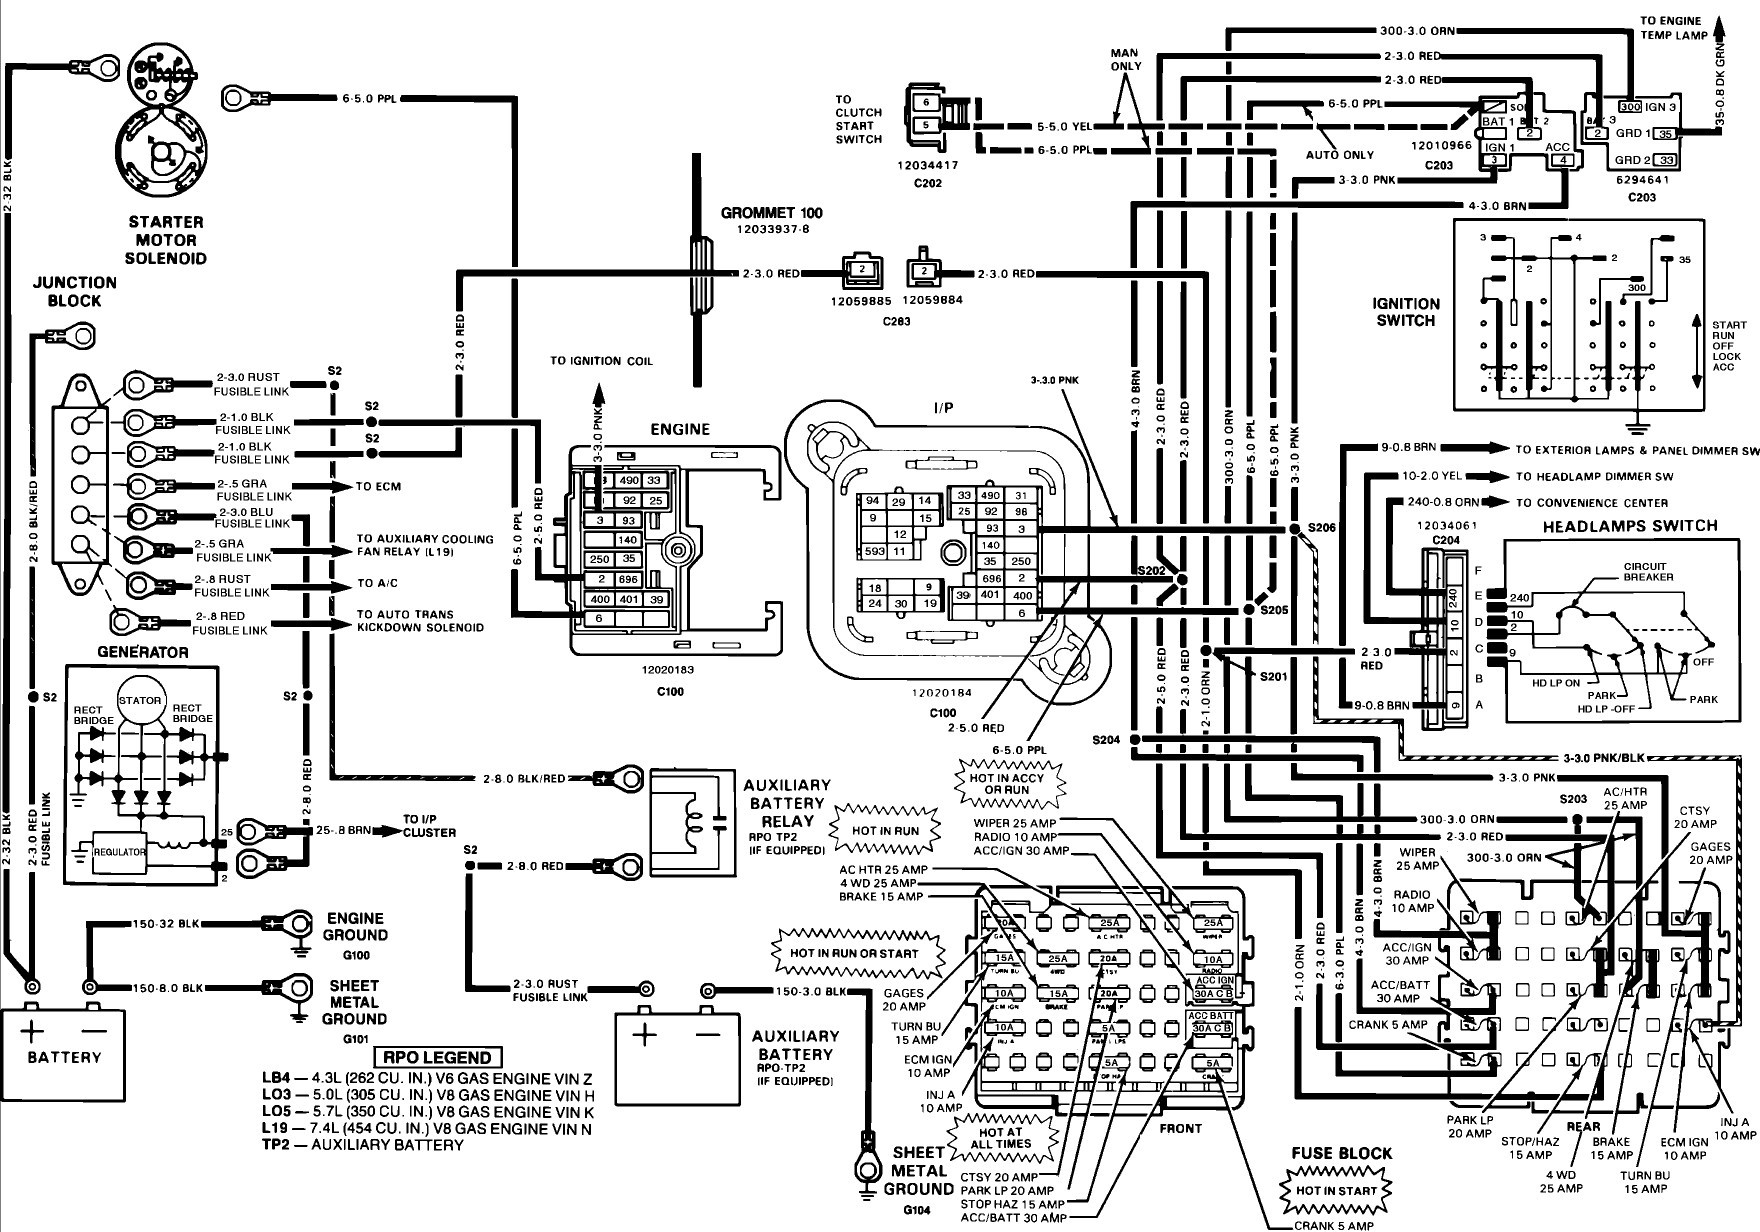 Diagram Bmw X3 Wiring Diagram Pdf Sample